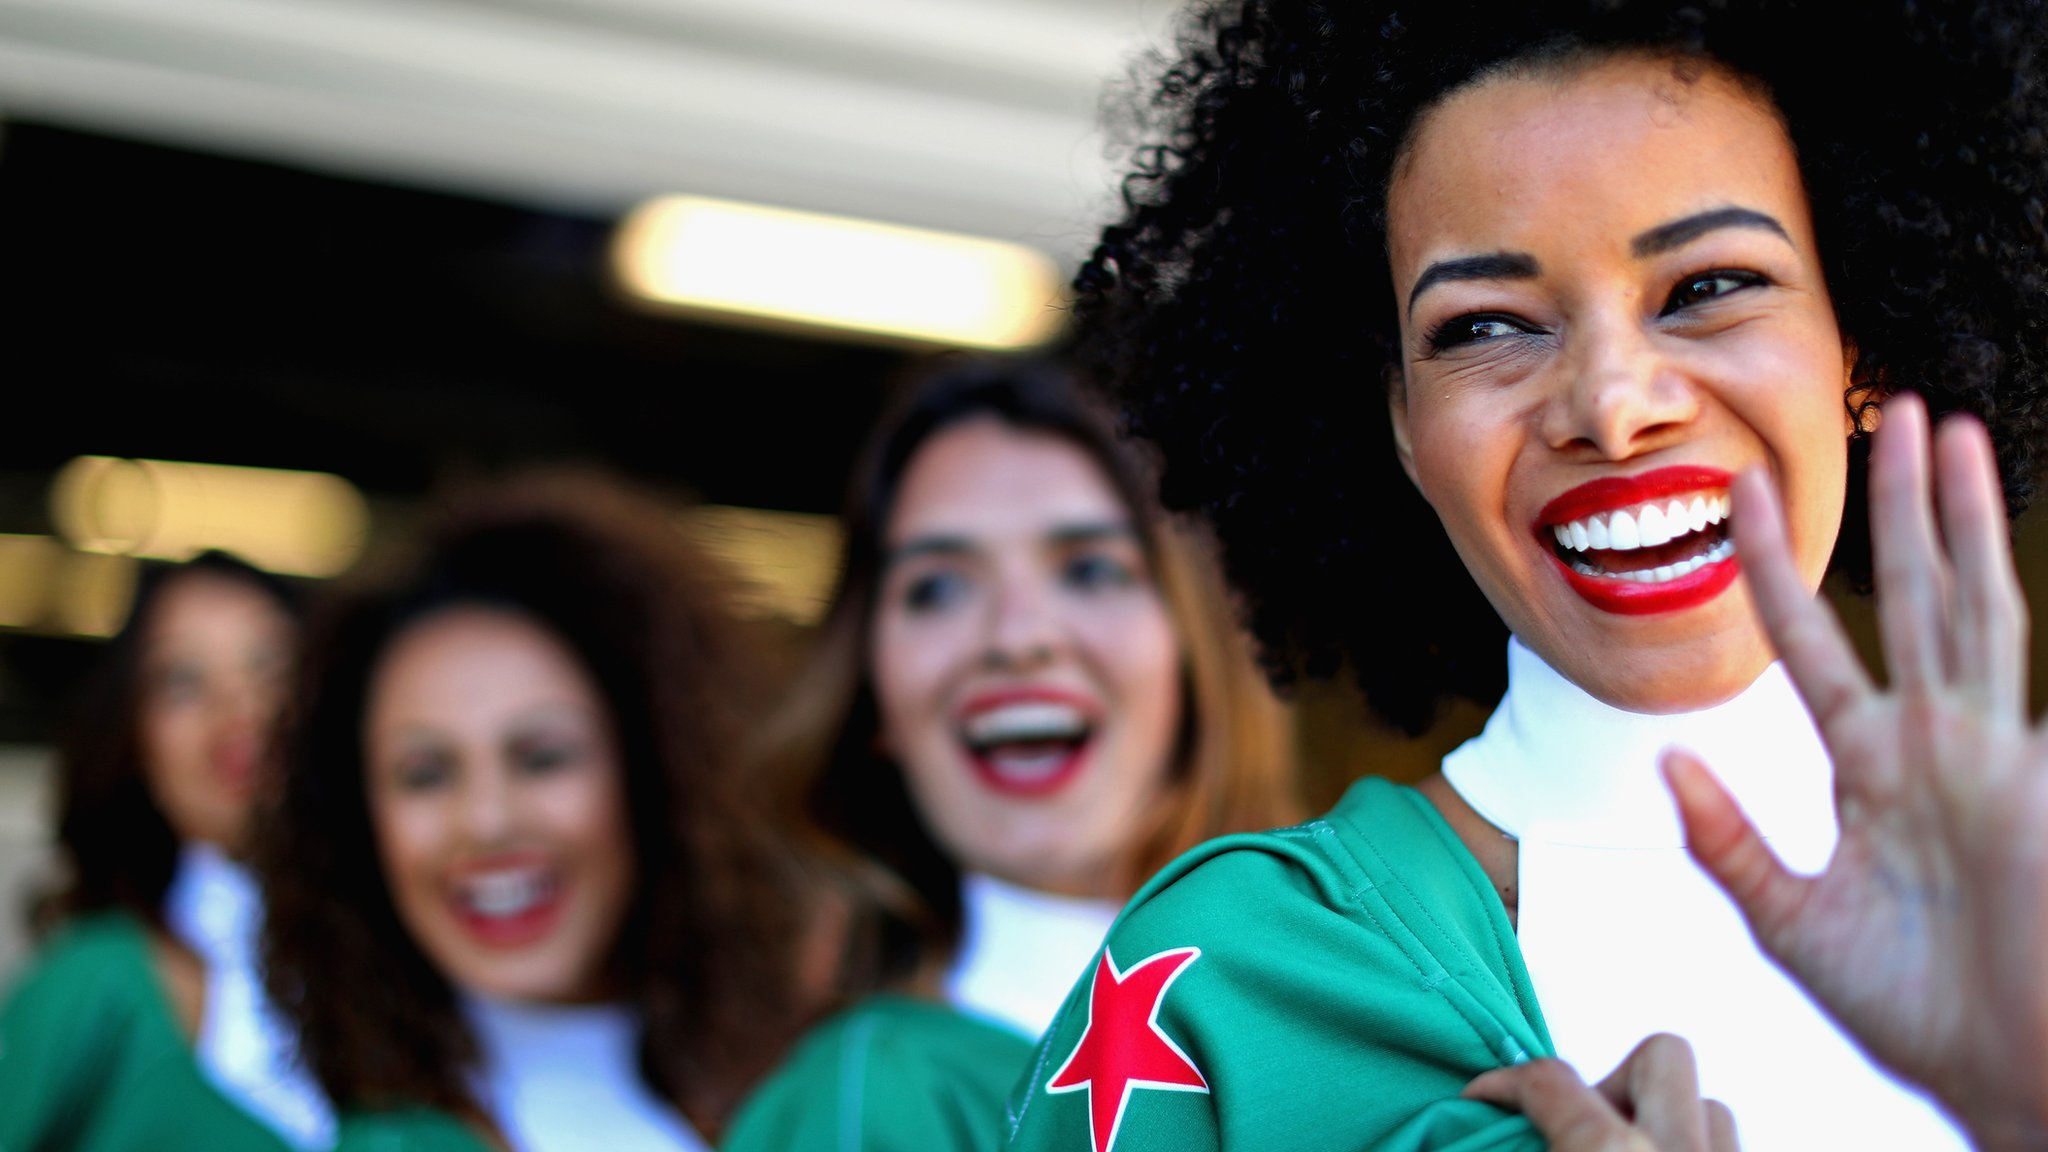 Formula 1 'grid girls' under review - what did you think?